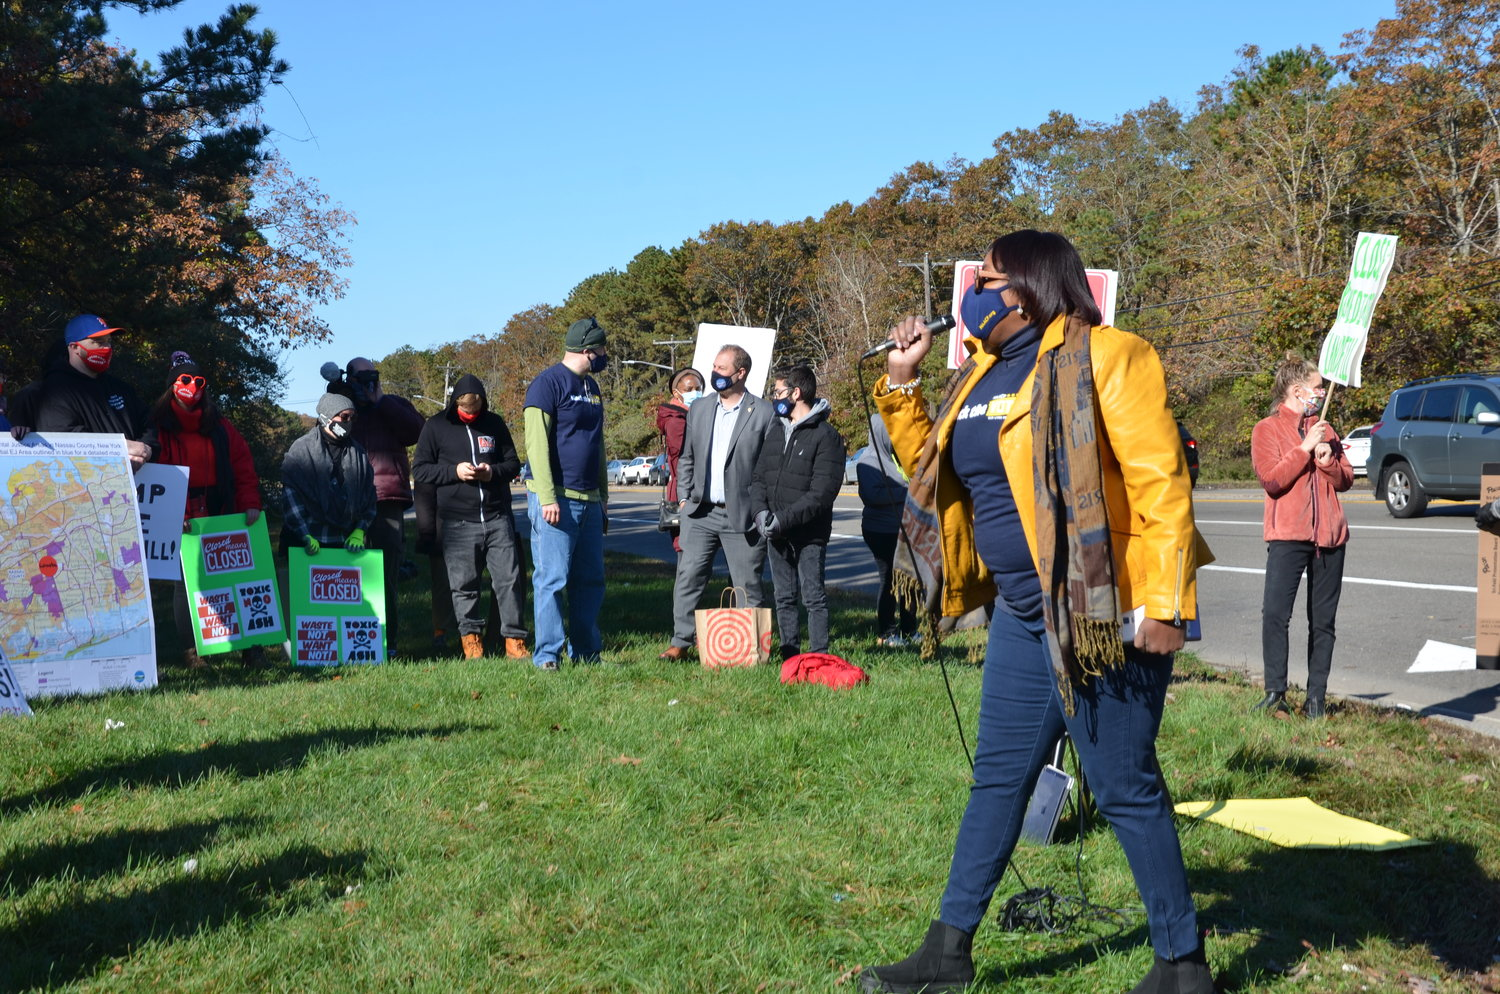 Dr. Georgette Grier-Key, president of the Brookhaven NAACP and Bellport resident, spoke at the event and discussed racial justice.